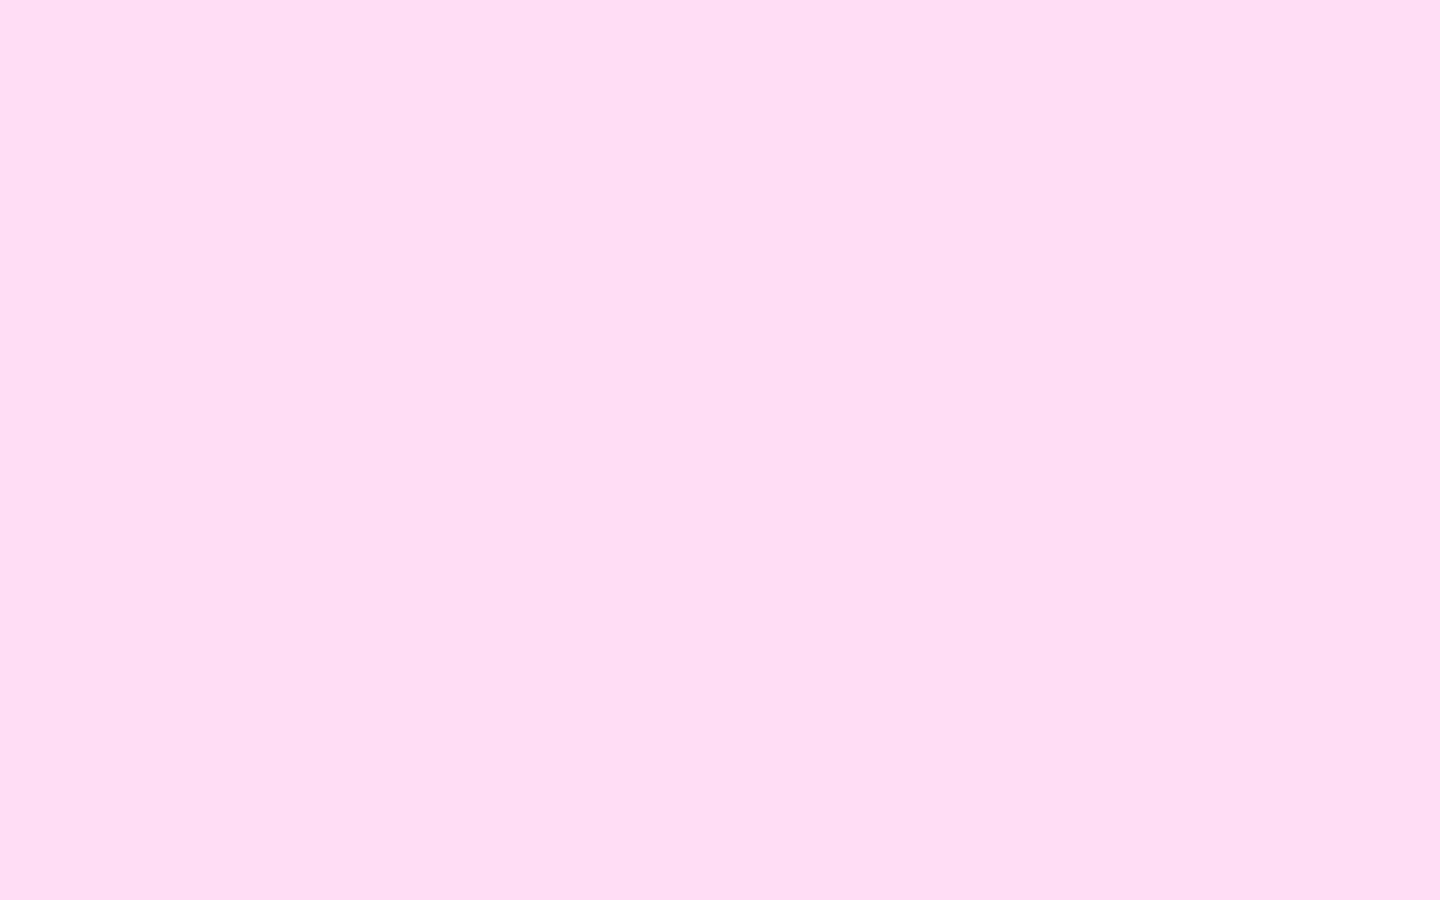 1440x900 Pink Lace Solid Color Background